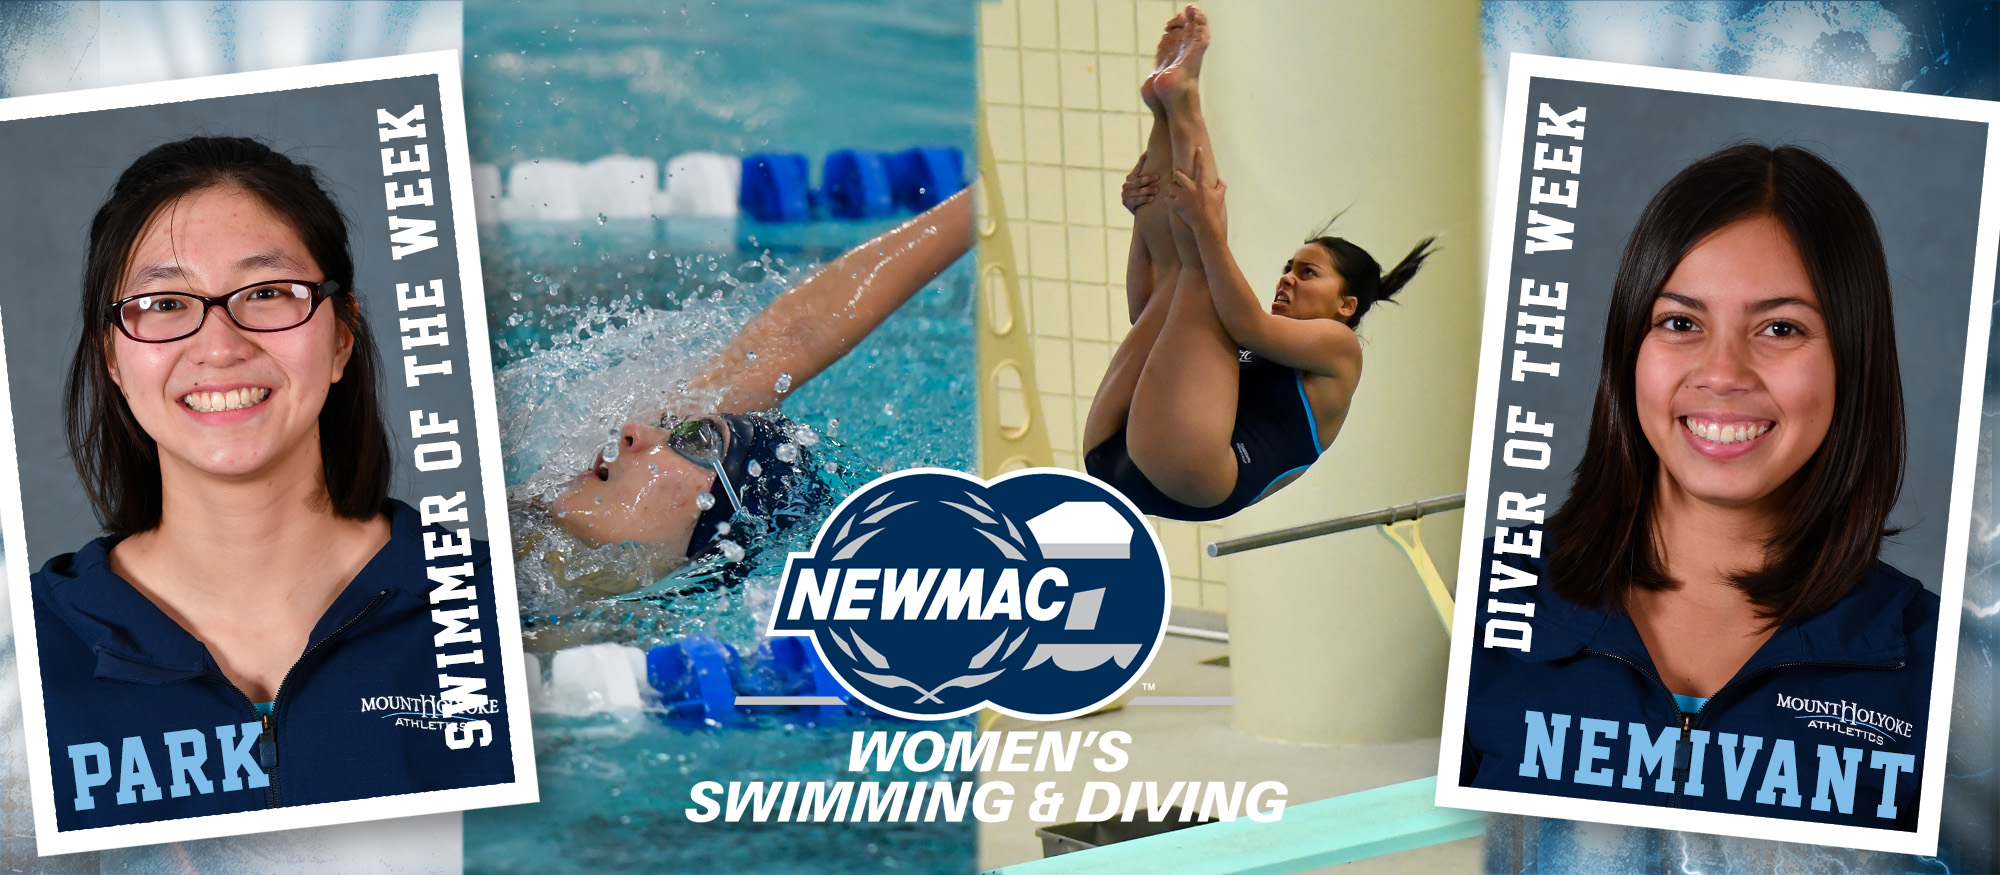 Image depicting the NEWMAC Swimmer of the Week, Jacqueline Park and the NEWMAC Diver of the Week, Samantha Nemivant - who were named on February 11, 2019.